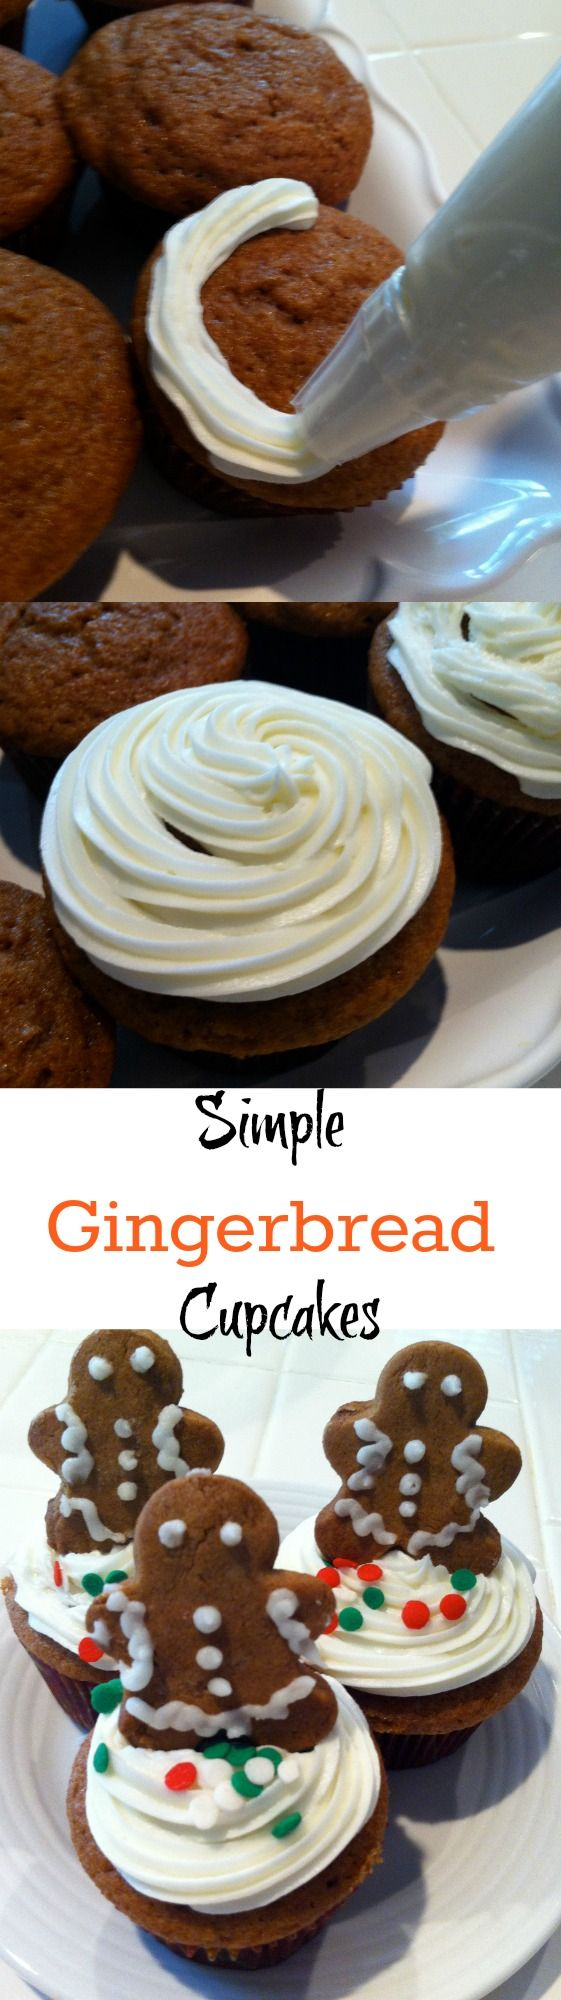 These simple gingerbread cupcakes are so easy to make with a boxed cake mix!